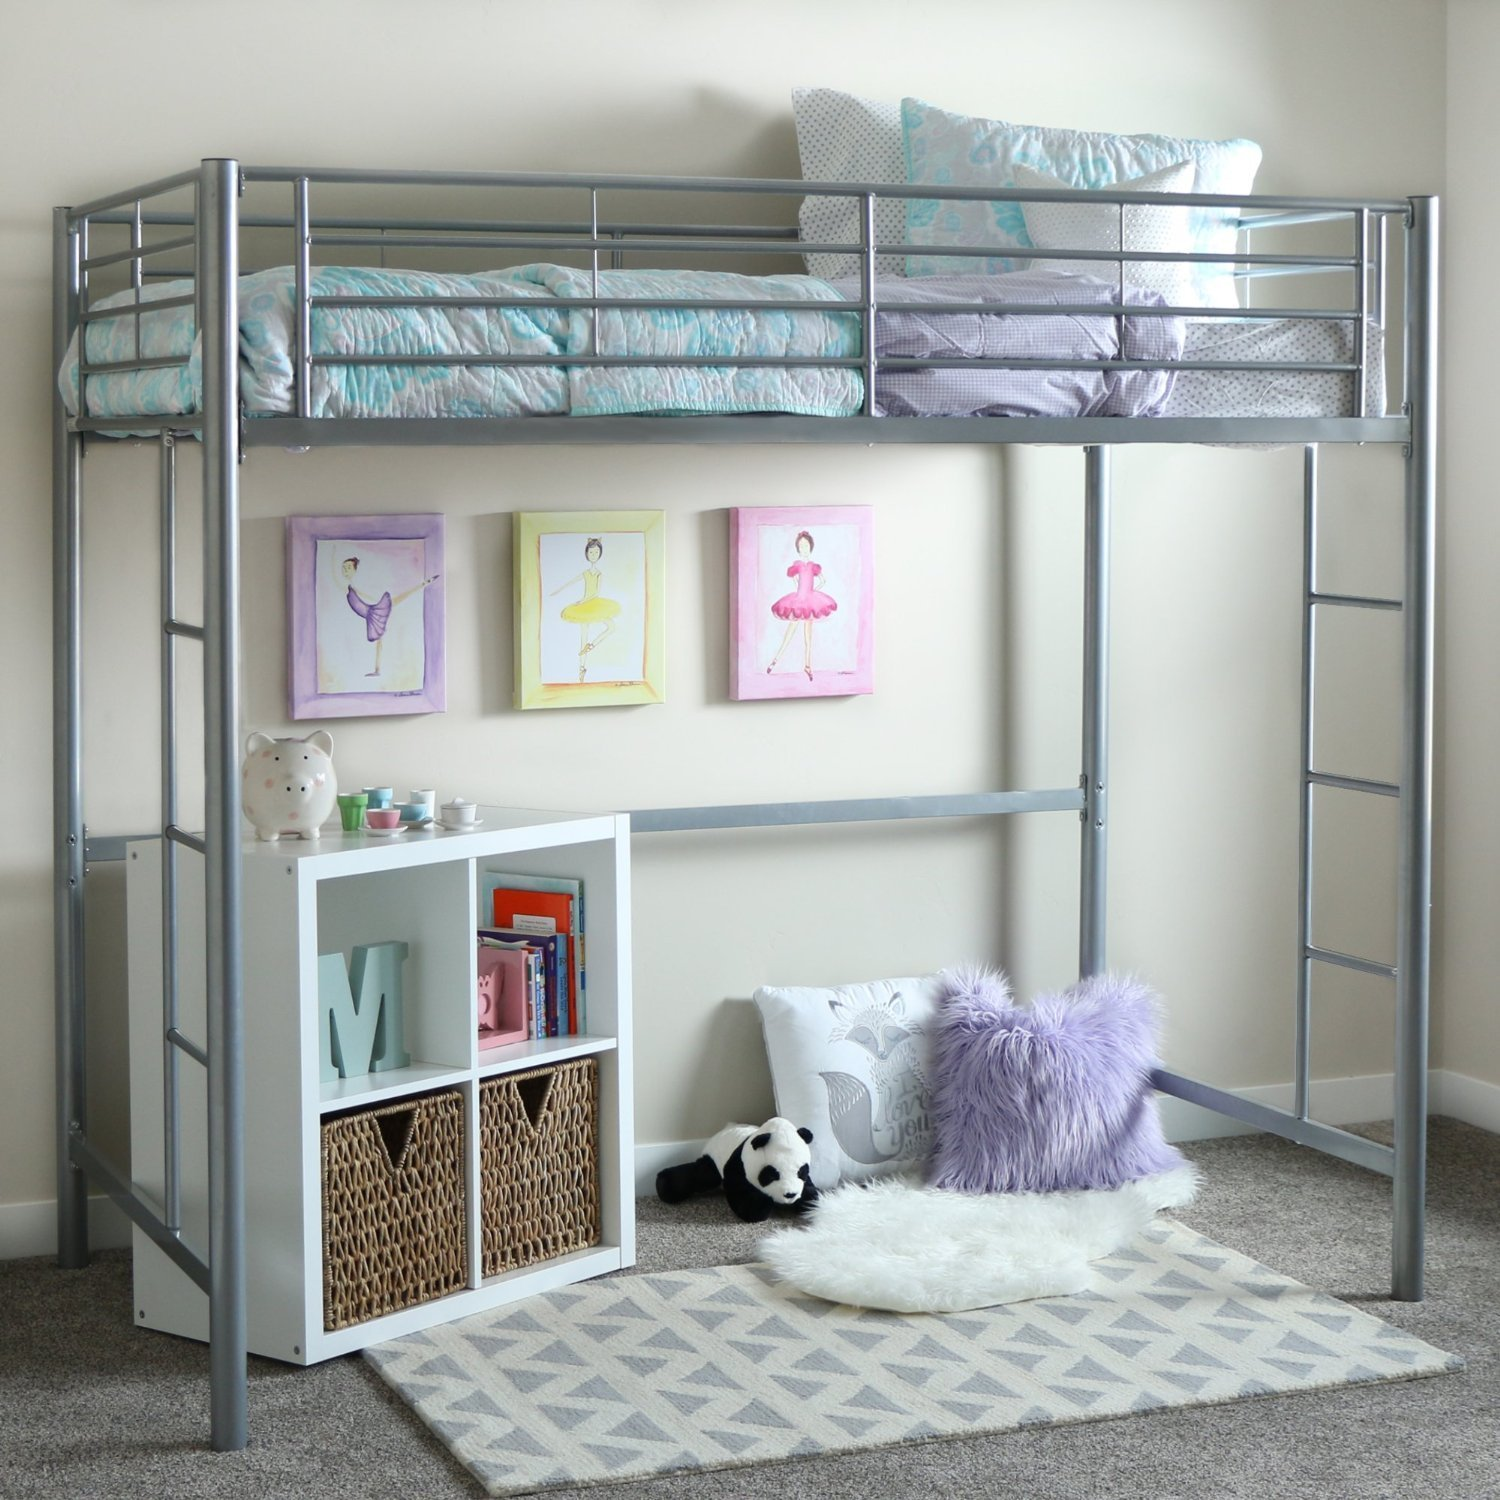 Best Metal Loft Bed 157 36 Twin Mattress 72 60 Highly With Pictures